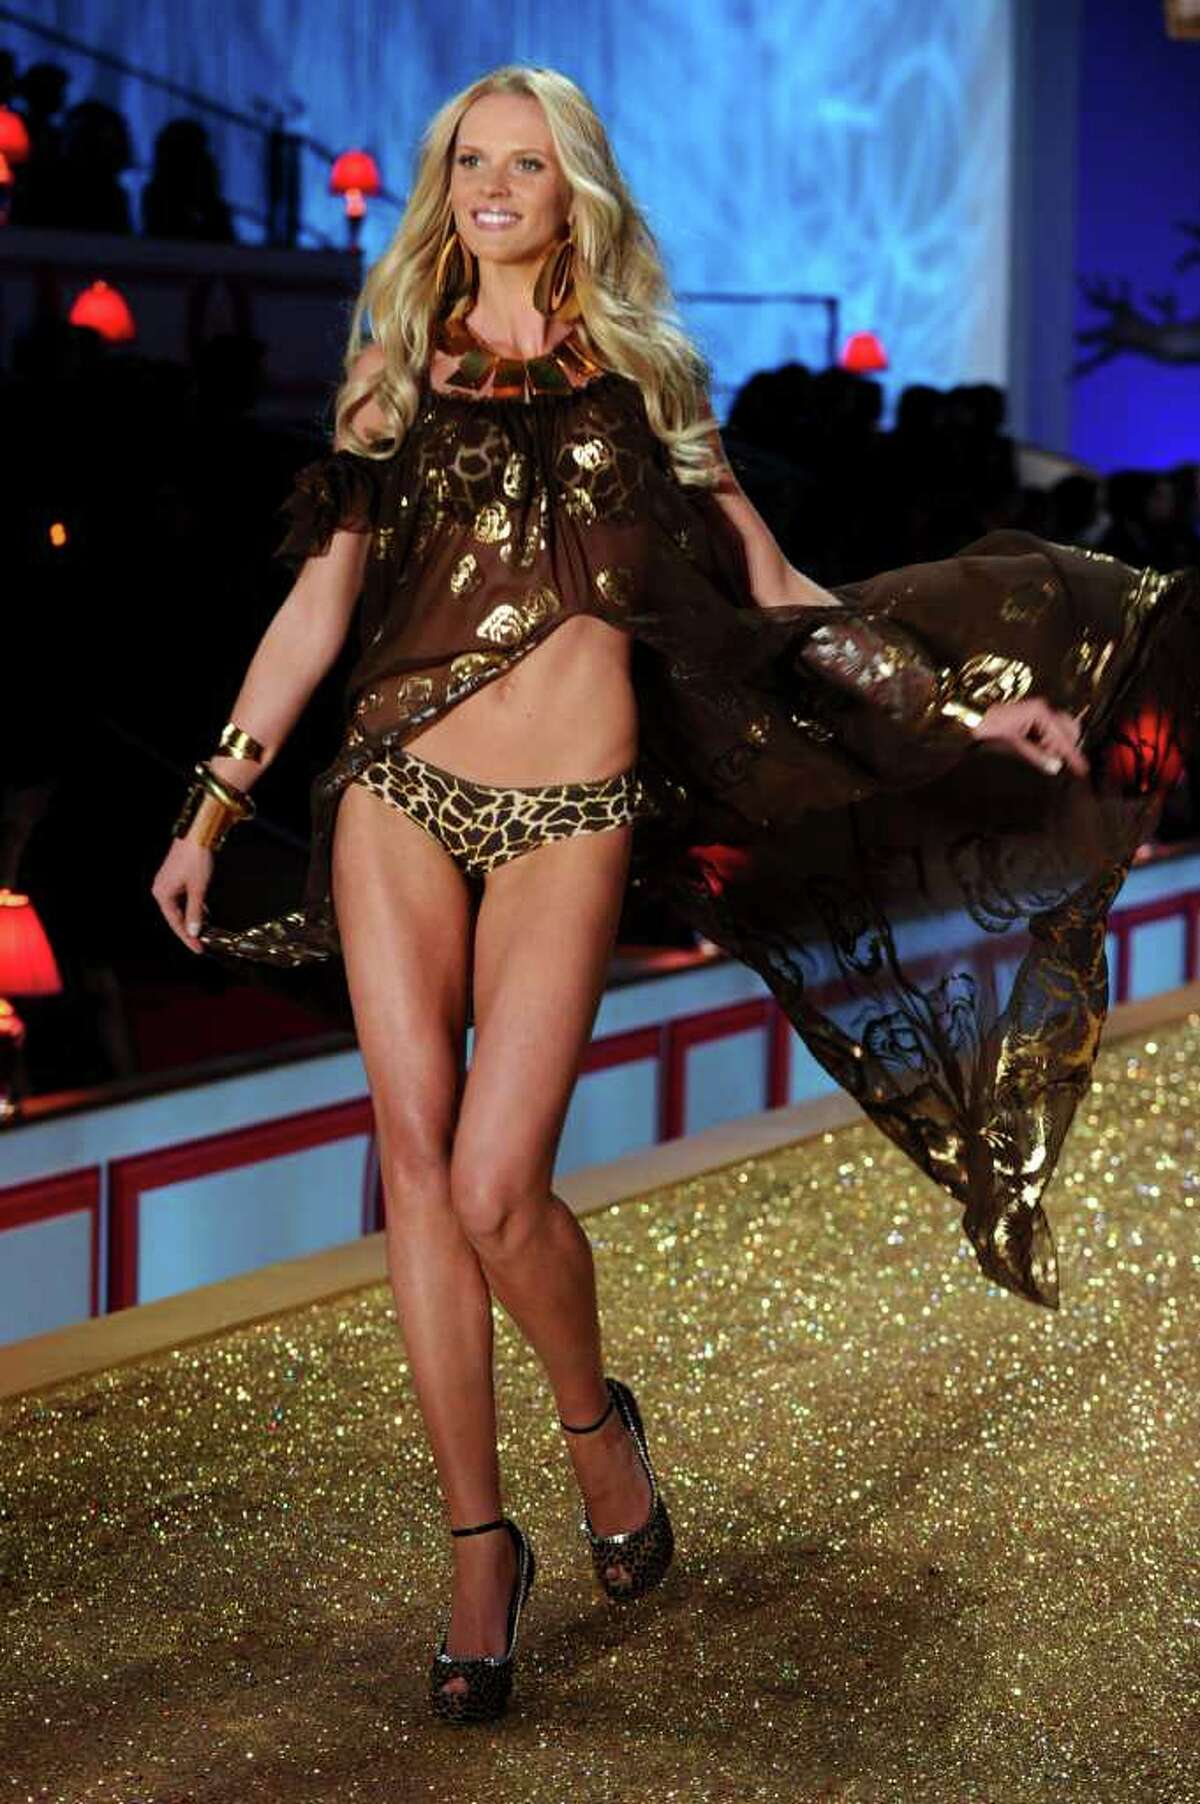 NEW YORK - NOVEMBER 10: Model Anne Vyalitsina walks the runway during the 2010 Victoria's Secret Fashion Show at the Lexington Avenue Armory on November 10, 2010 in New York City. (Photo by Theo Wargo/Getty Images) *** Local Caption *** Anne Vyalitsina